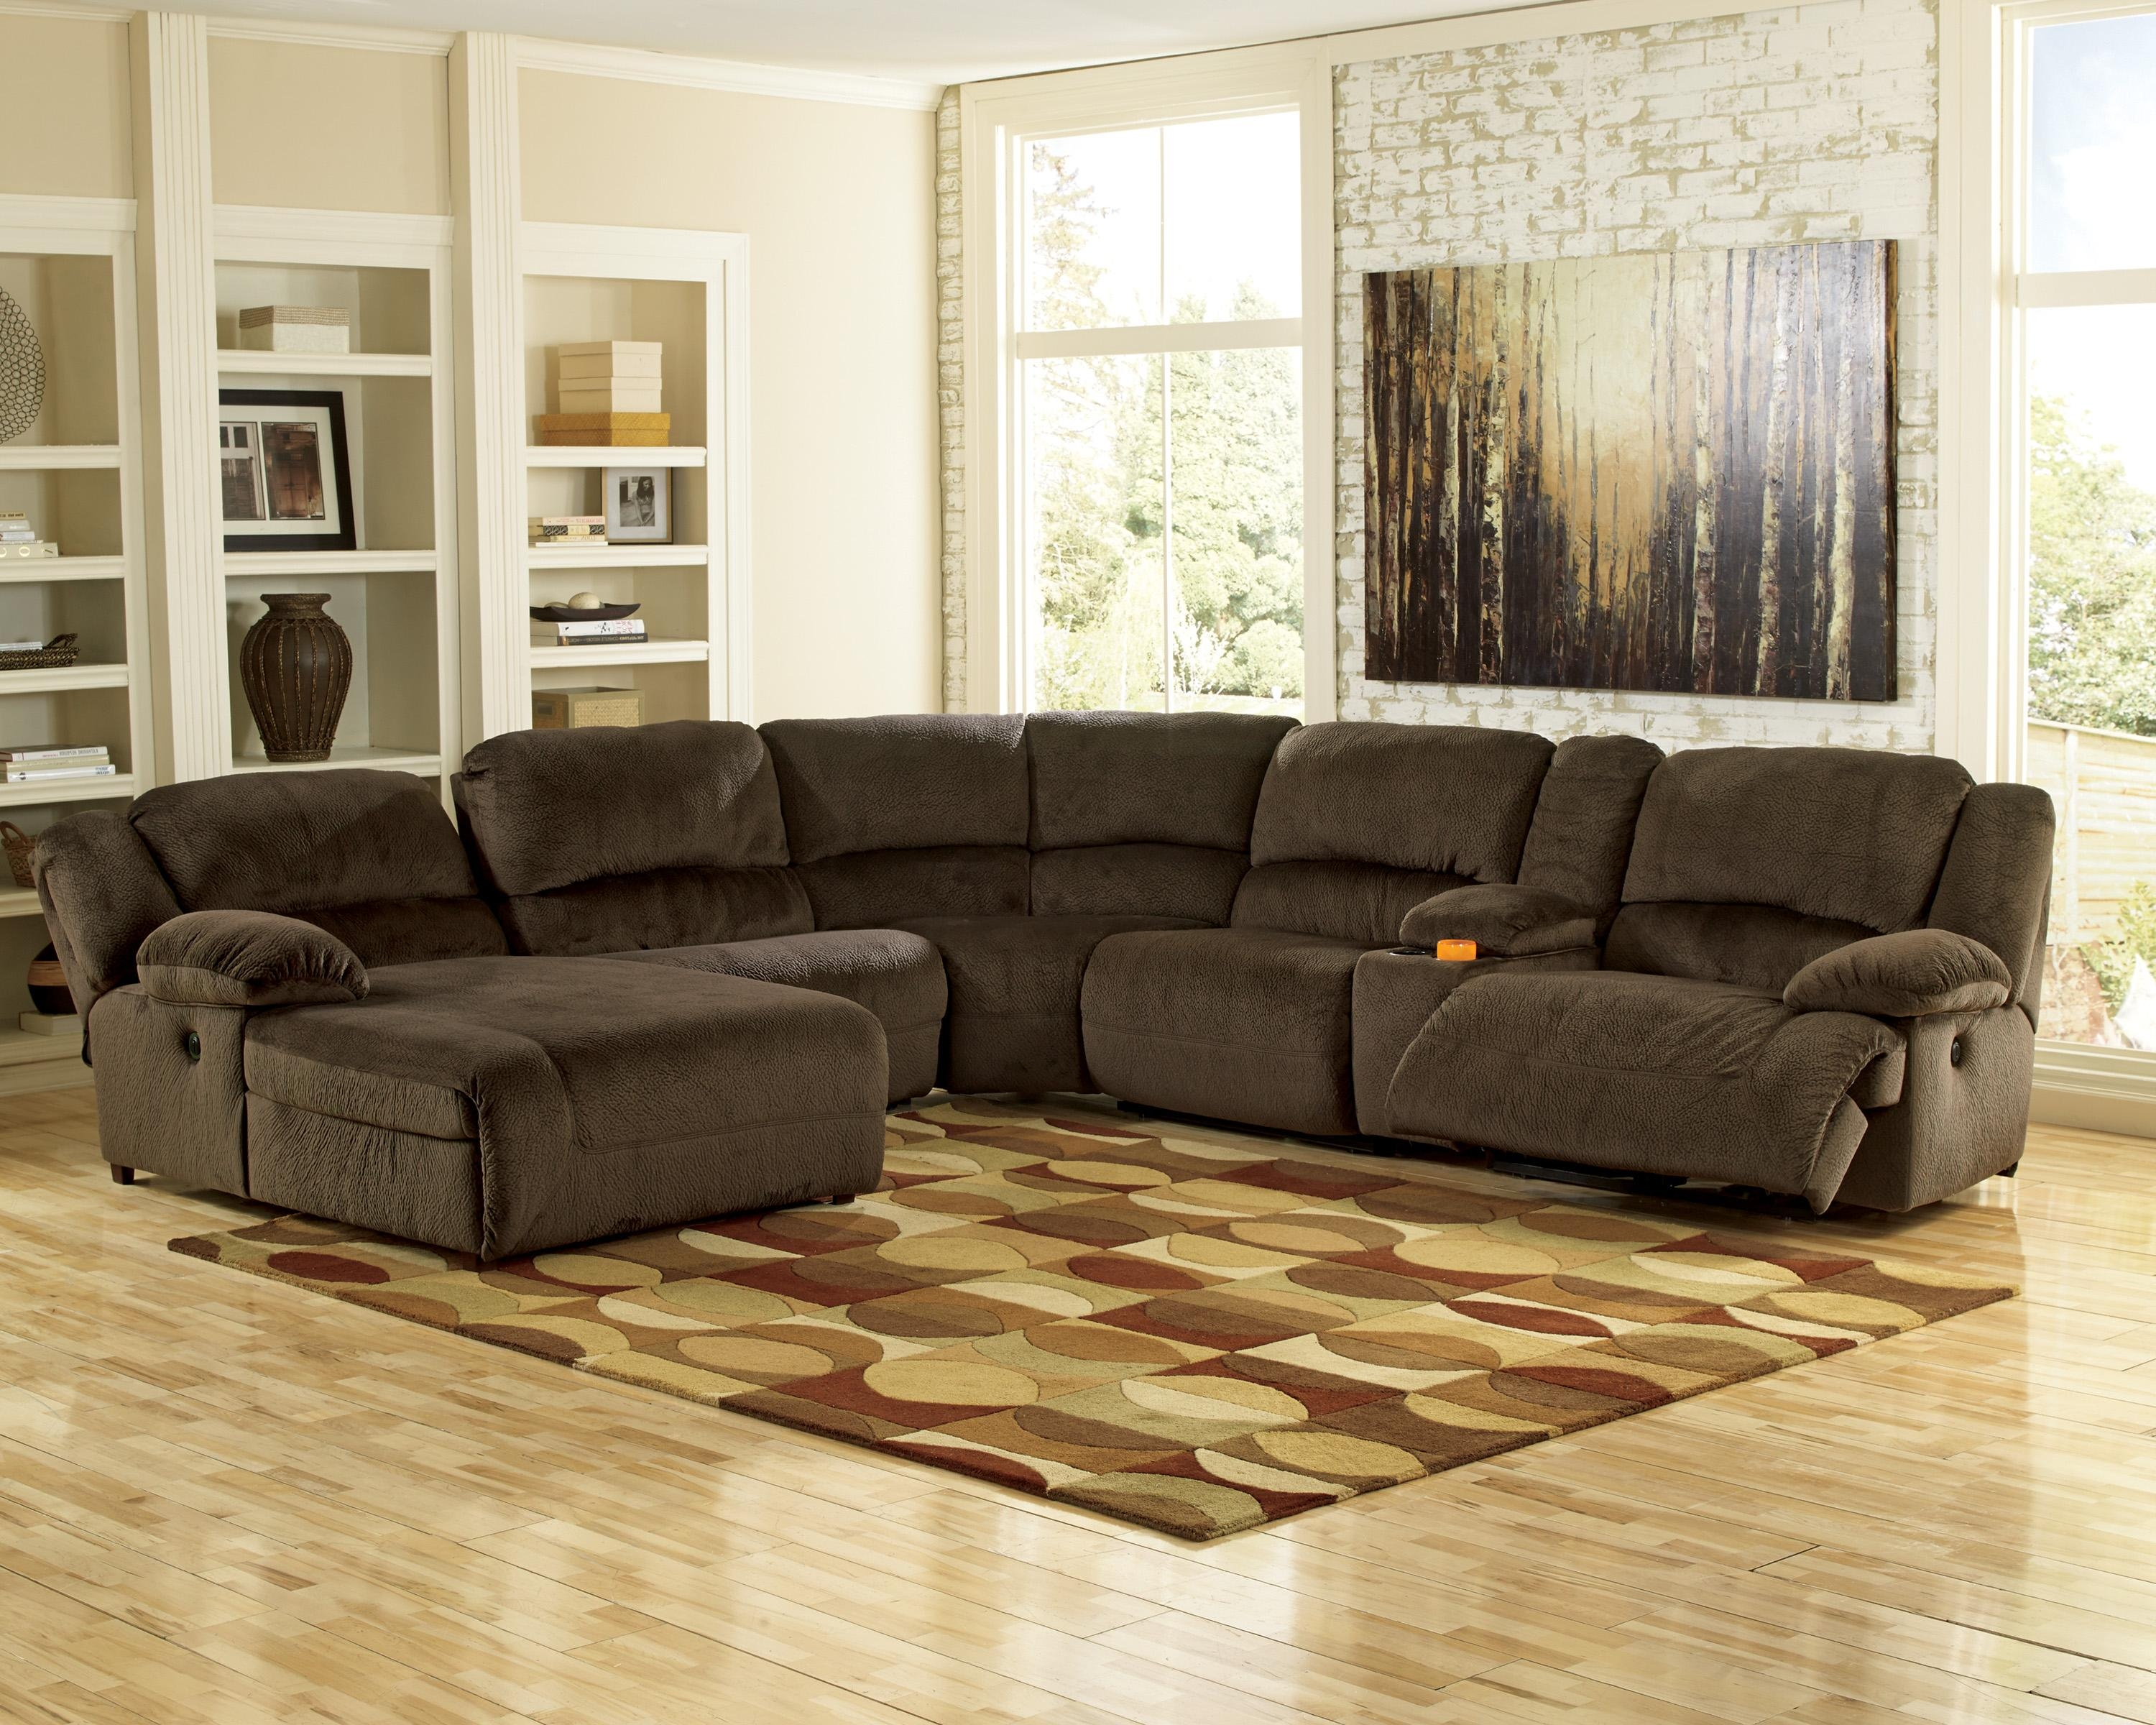 Ashley Furniture Sectional Couches (View 13 of 20)